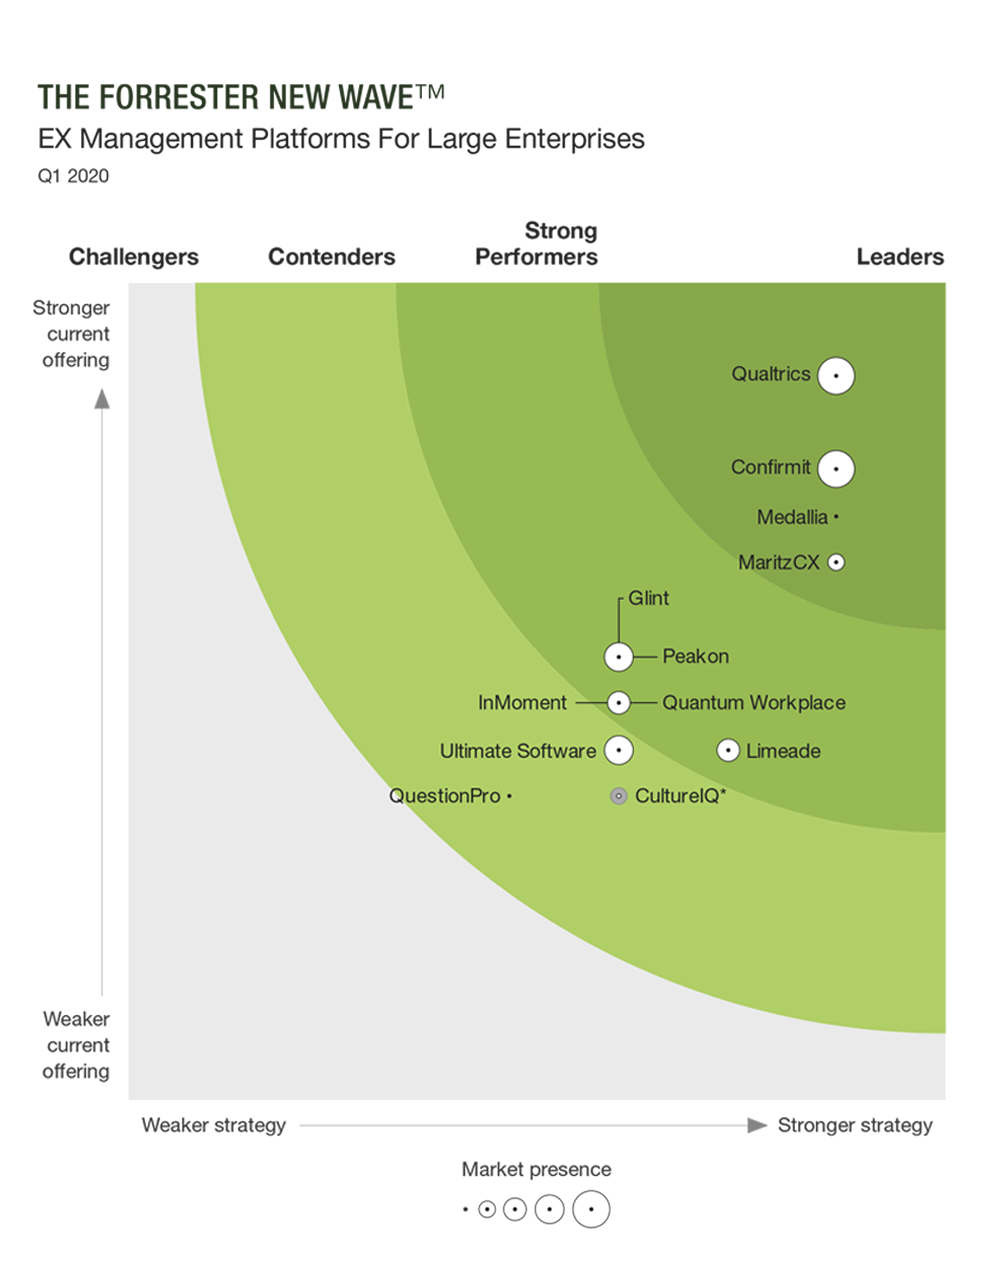 Confirmit Named a Leader in Employee Experience for Large Enterprises